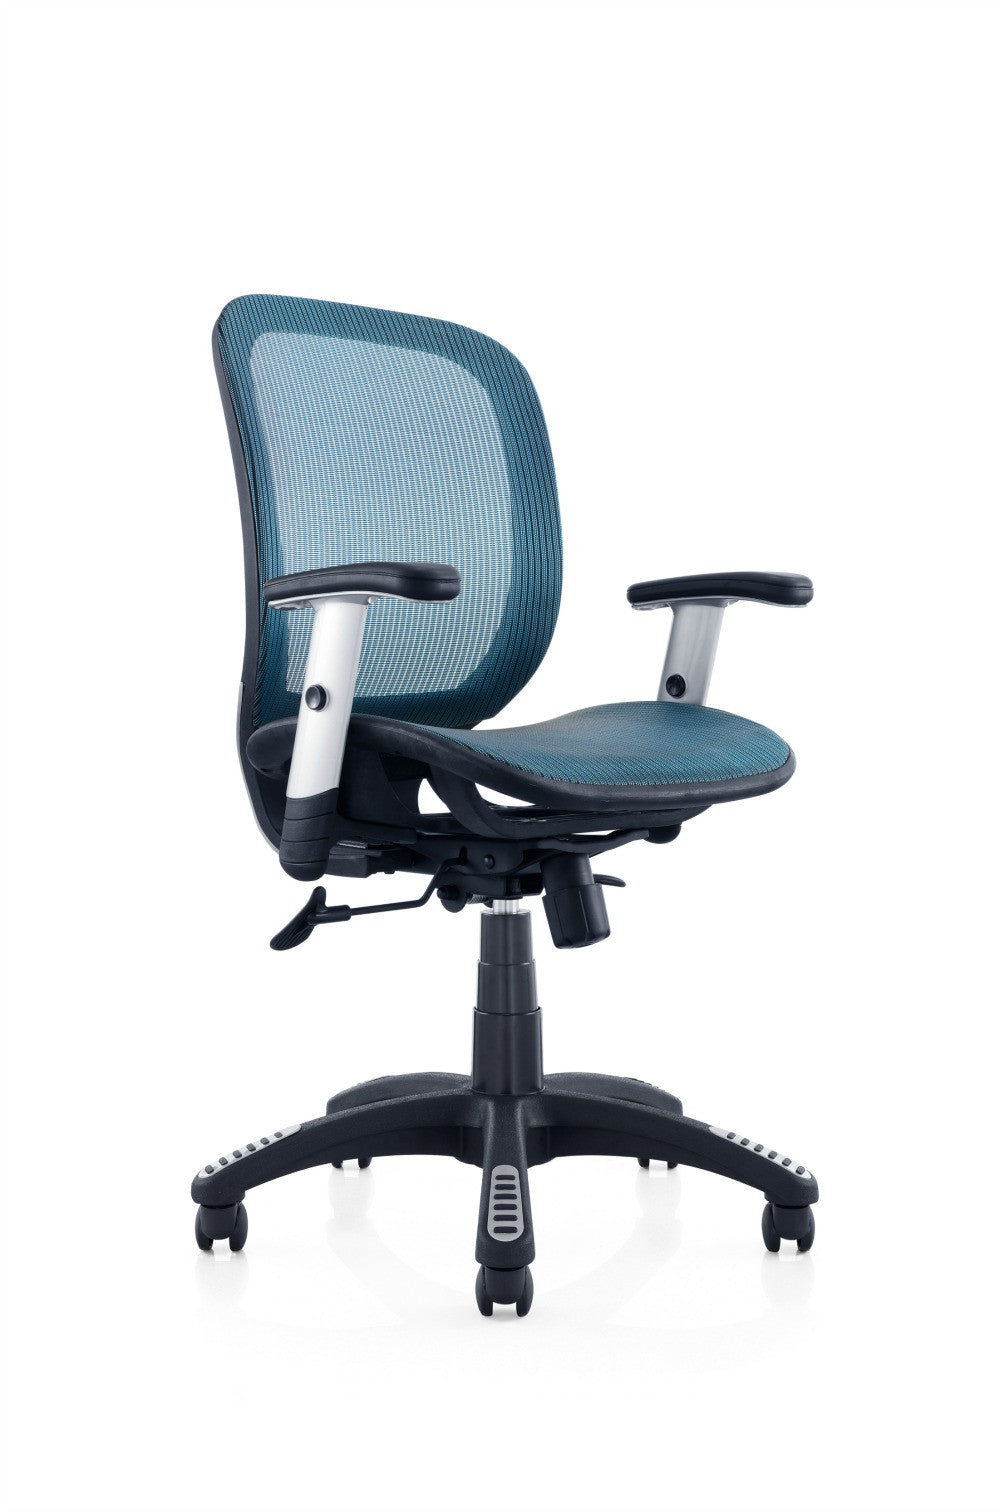 Fully Meshed Ergo Office Chair